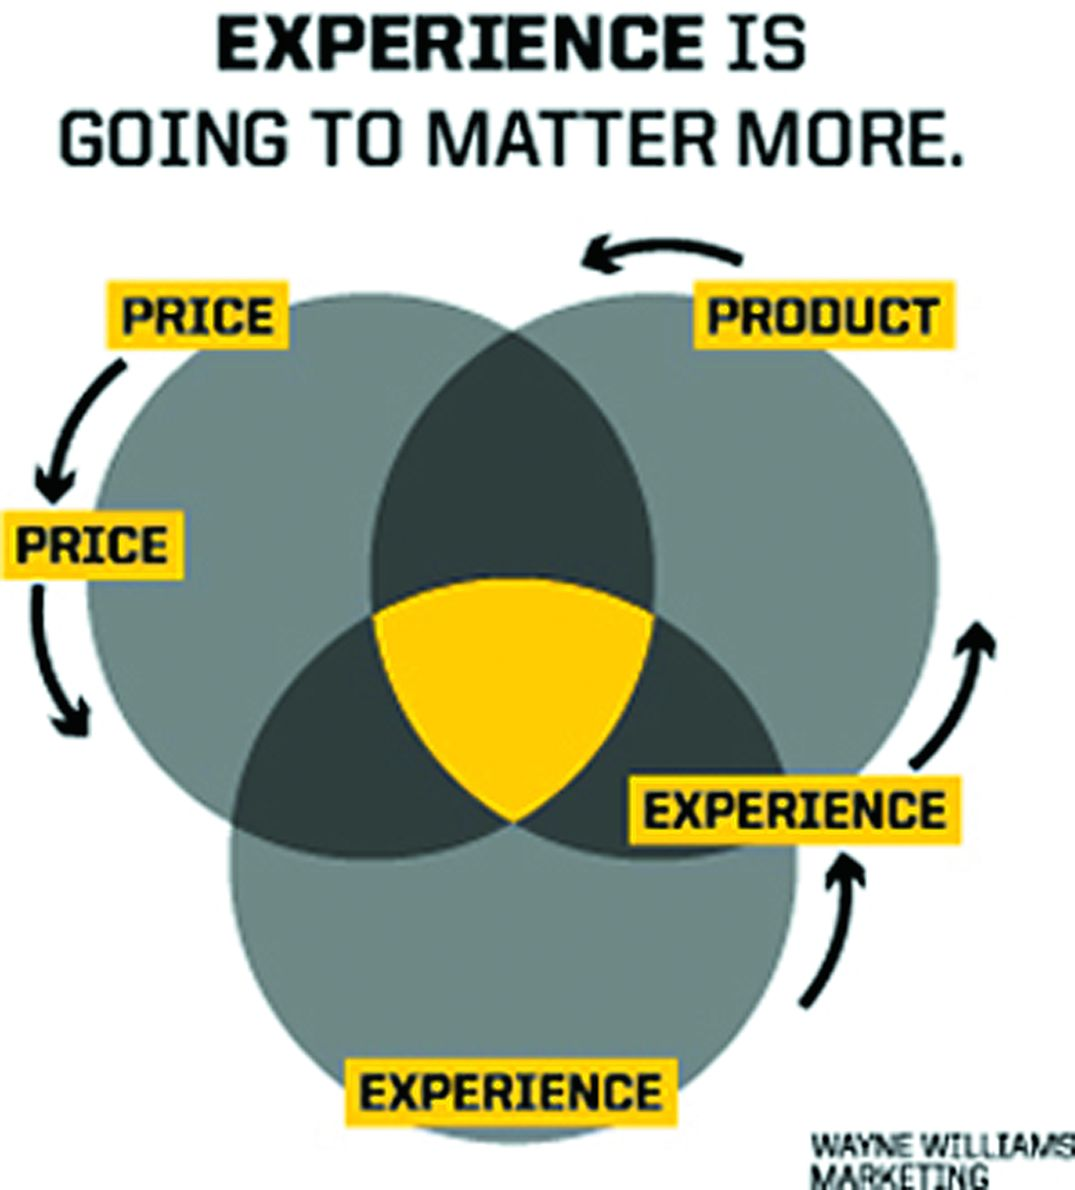 Customer-Service Revolution: How the 'User Experience' Will Trump Price by 2020